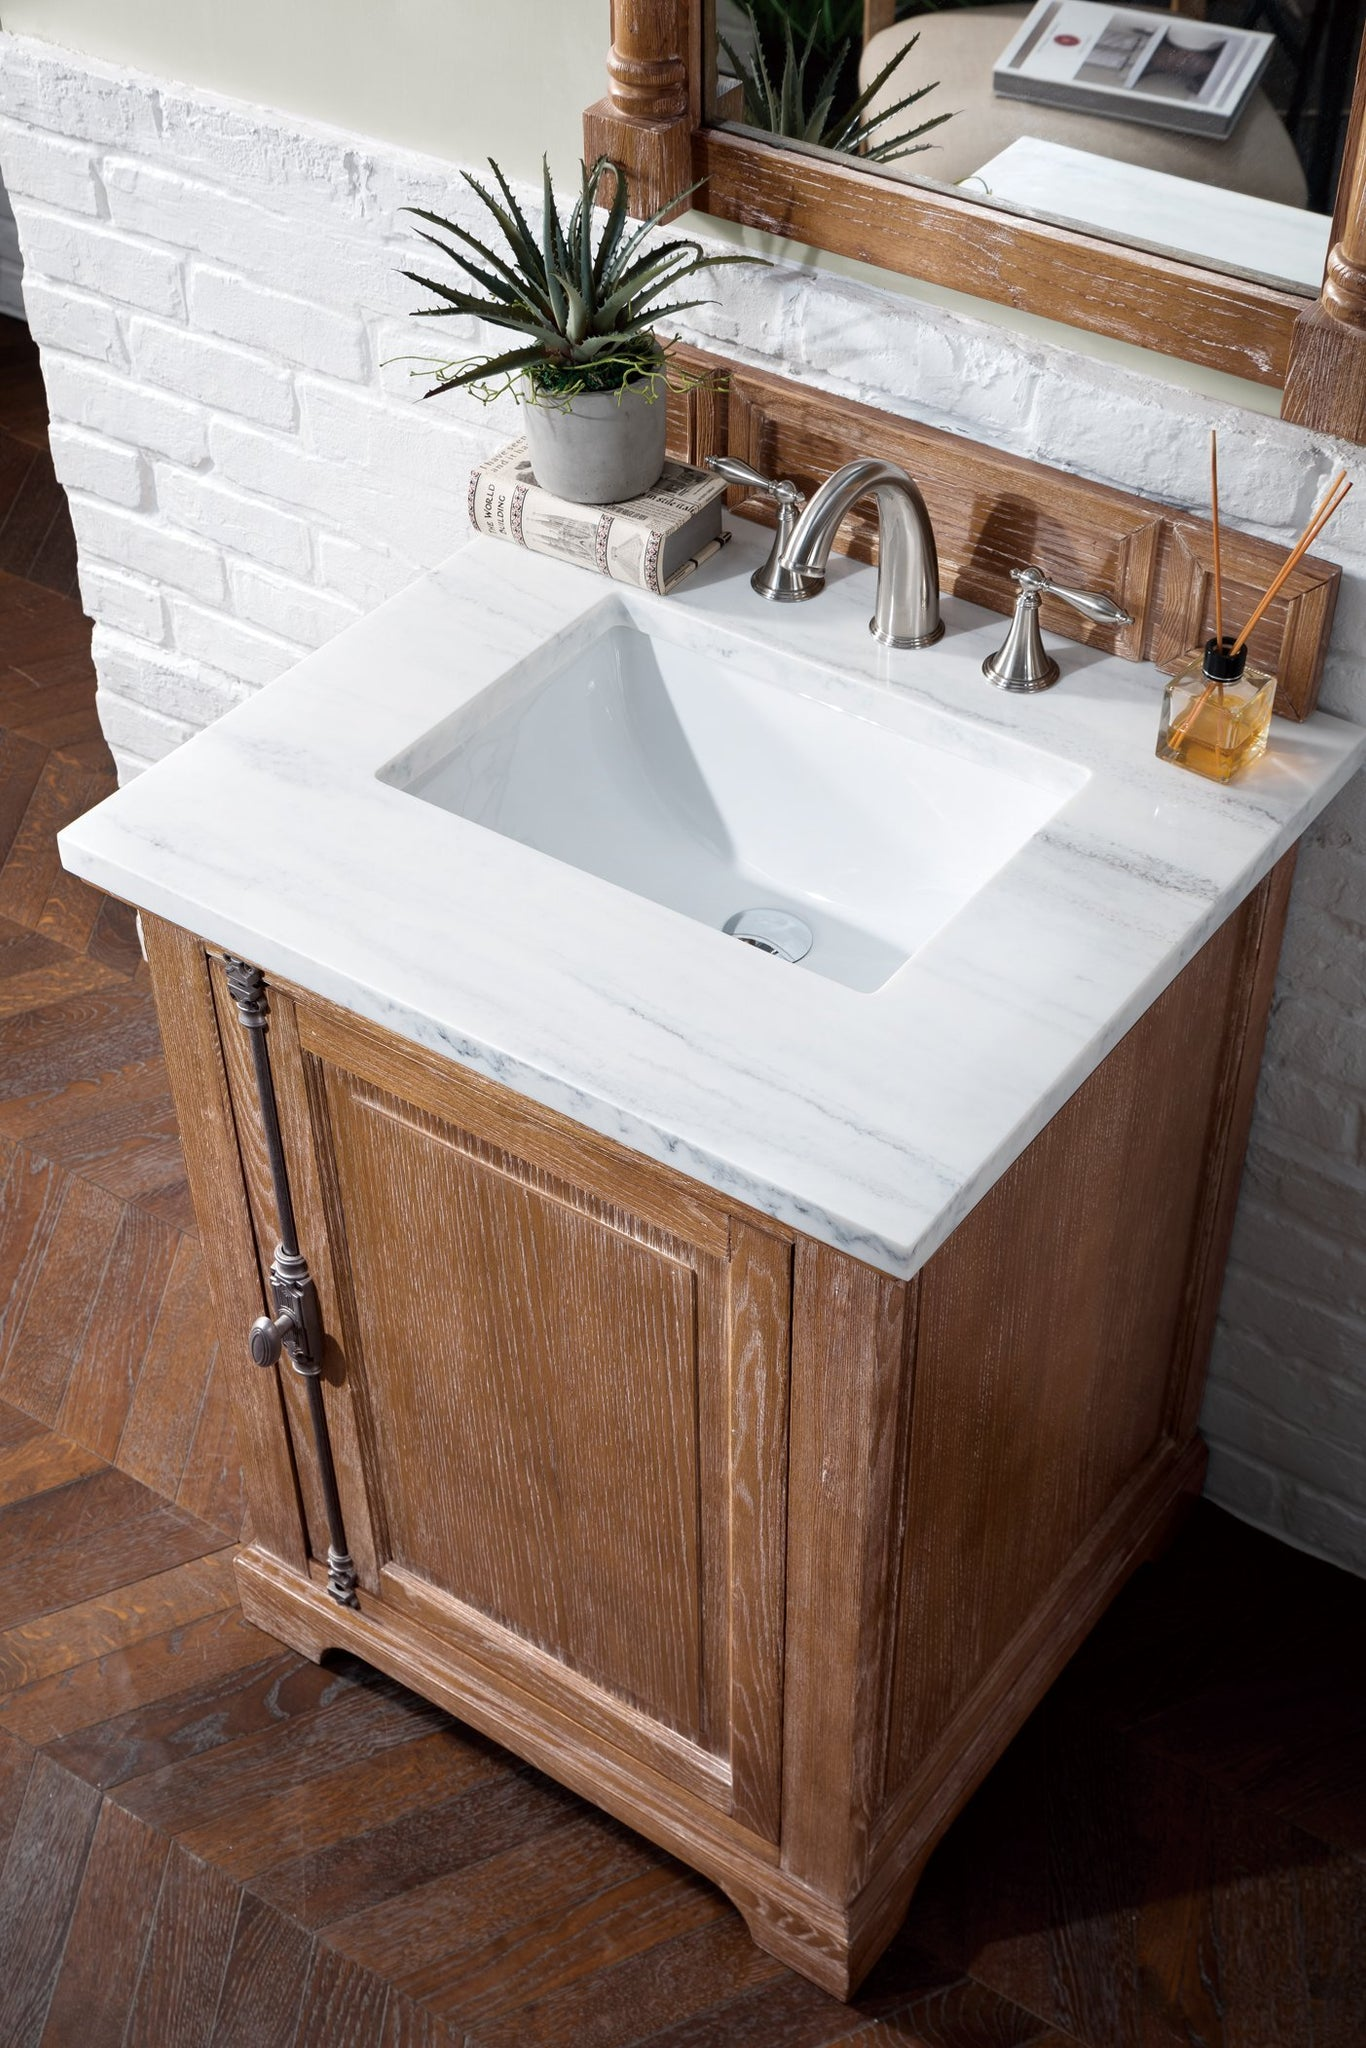 "Providence 26"" Single Bathroom Vanity Single Bathroom Vanity James Martin Vanities"